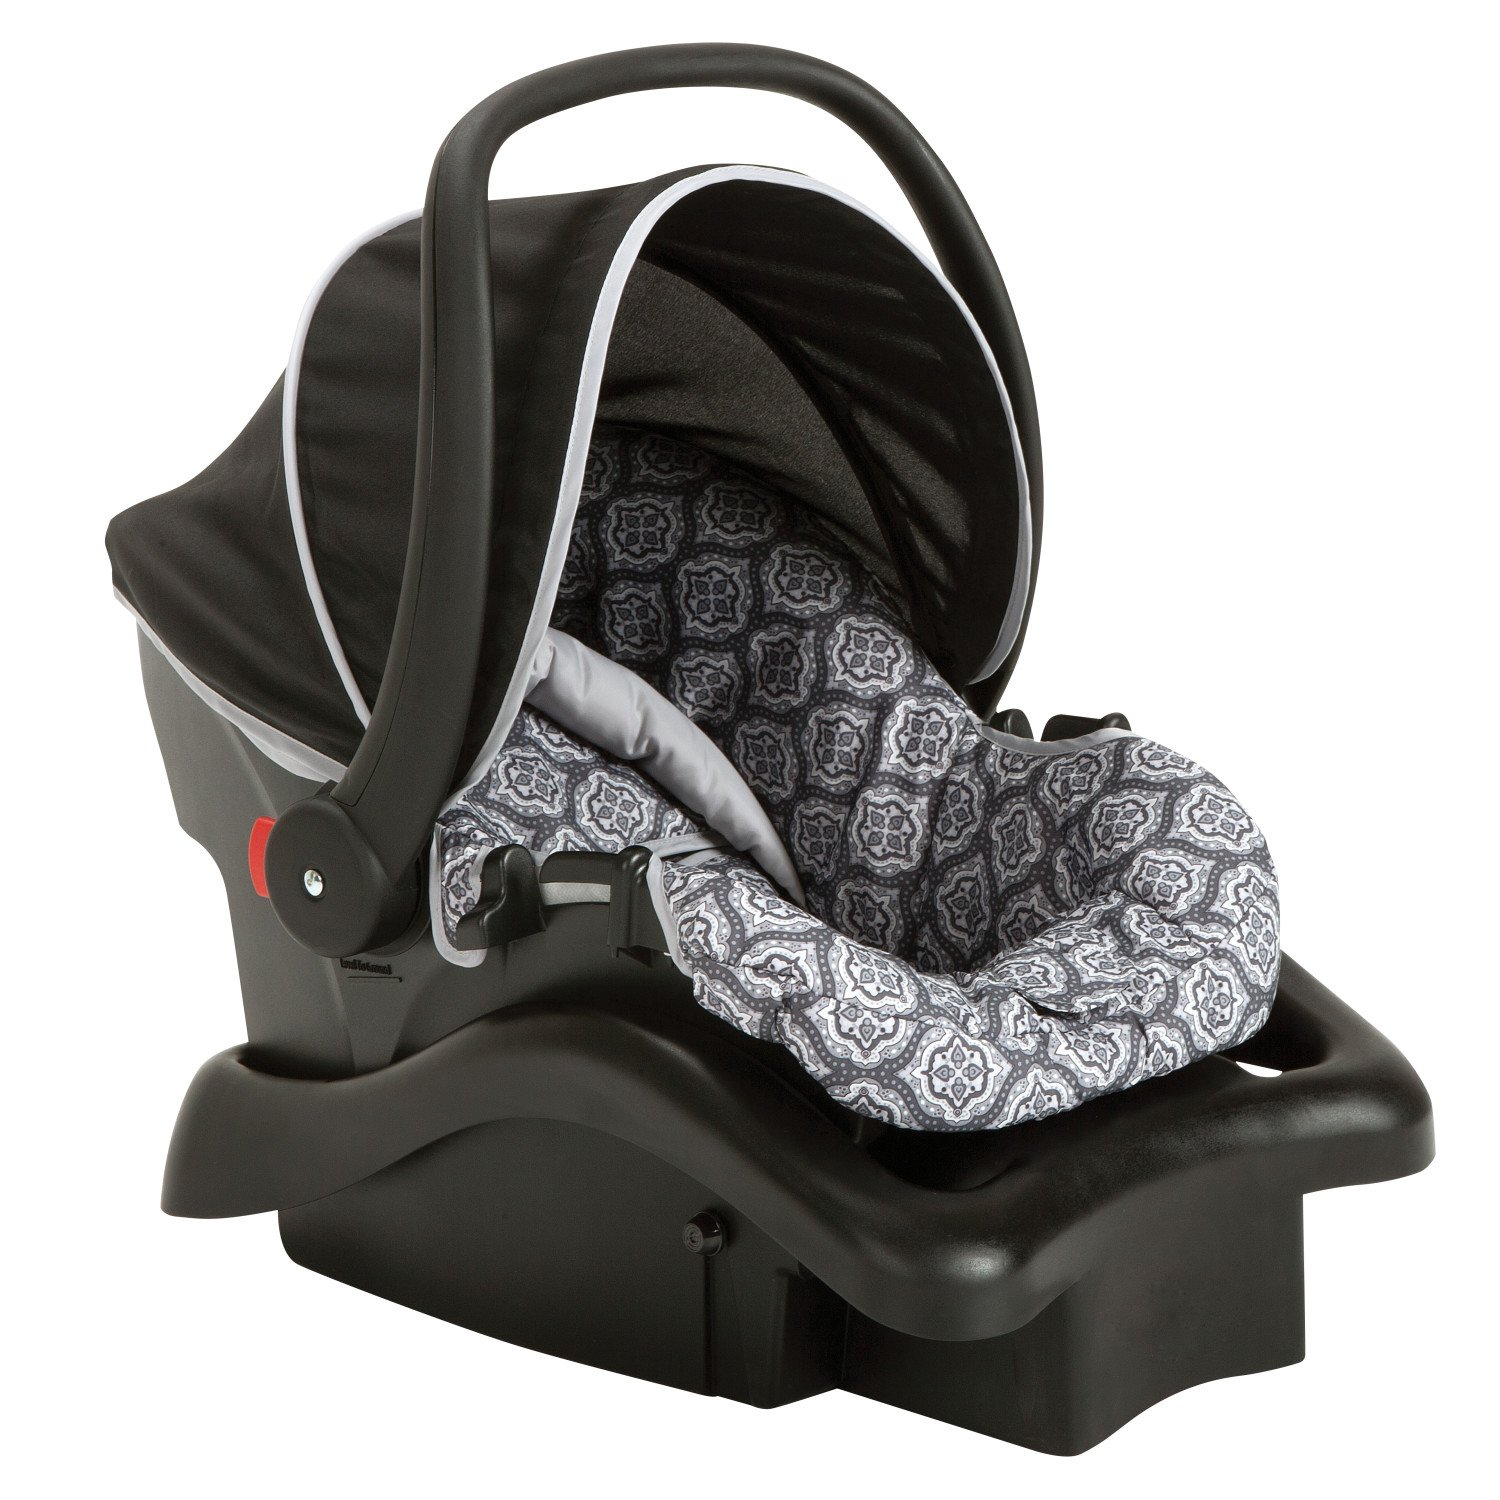 Amazon.com : Safety 1st Light 'n Comfy Elite Infant Car Seat ...